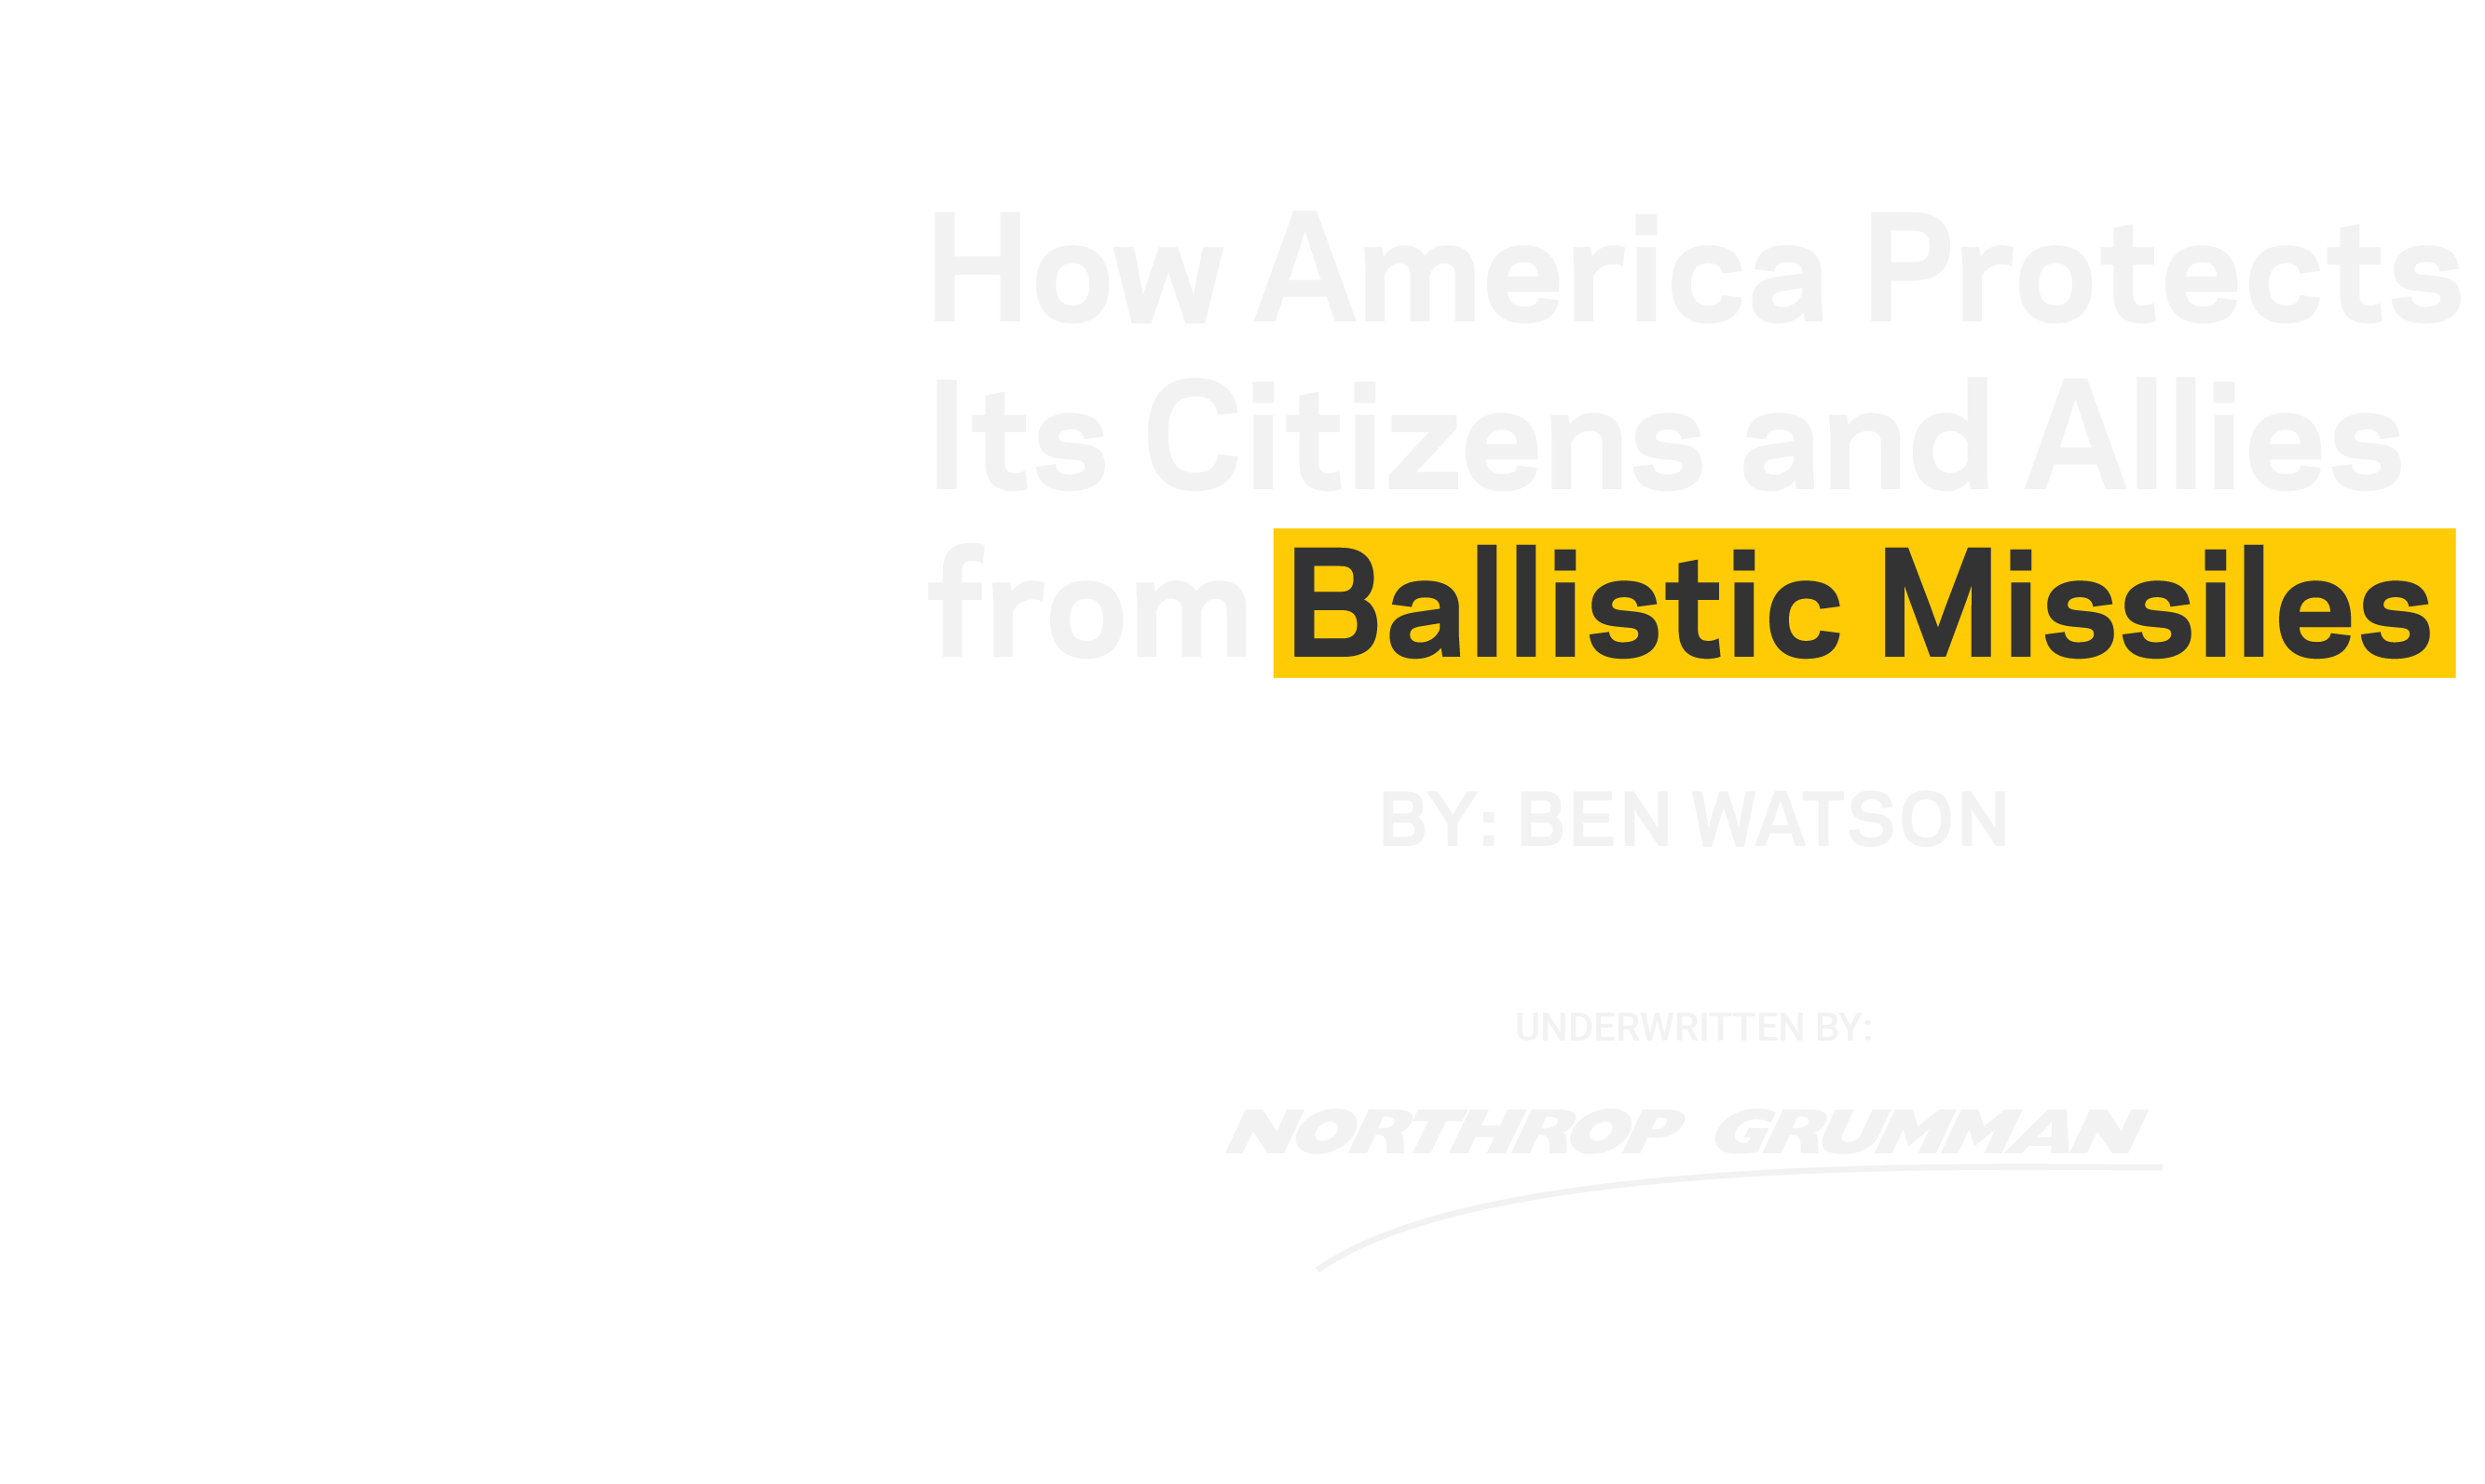 How America Protects Its Citizens and Allies from Ballistic Missiles